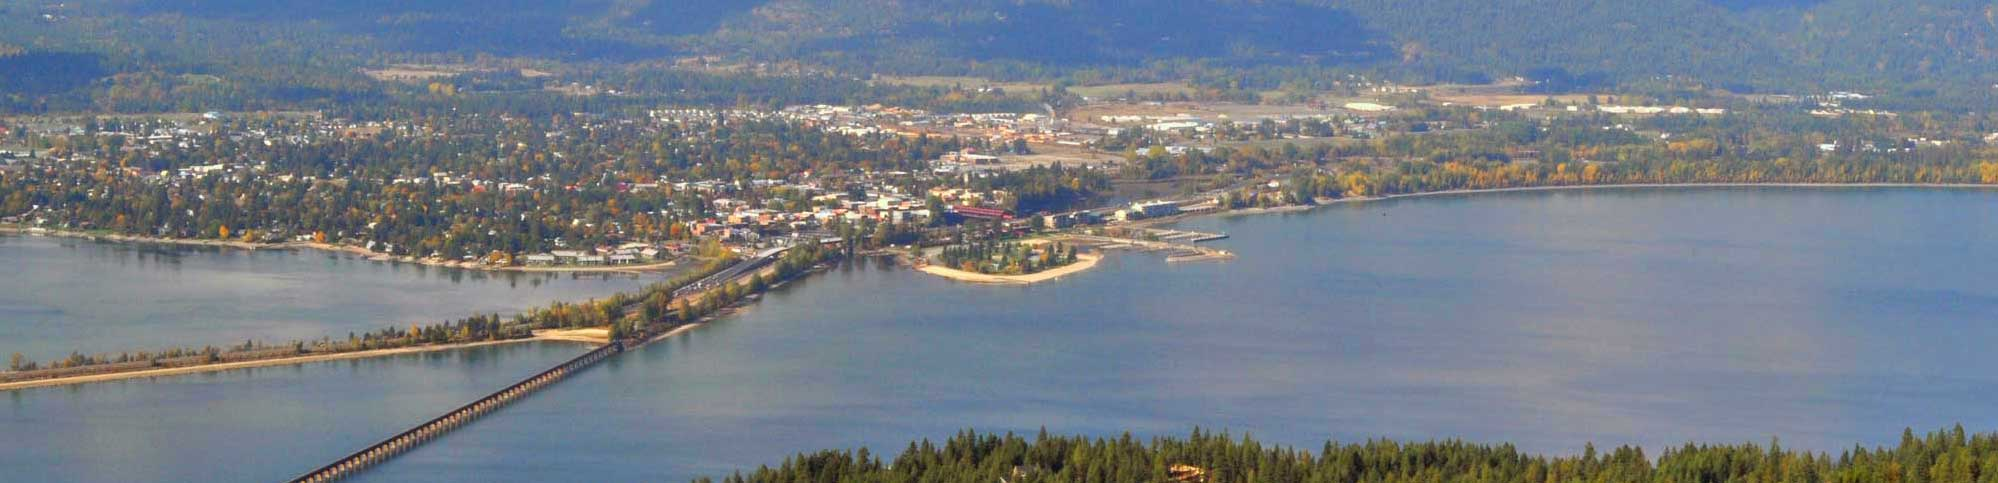 sandpoint-cropped